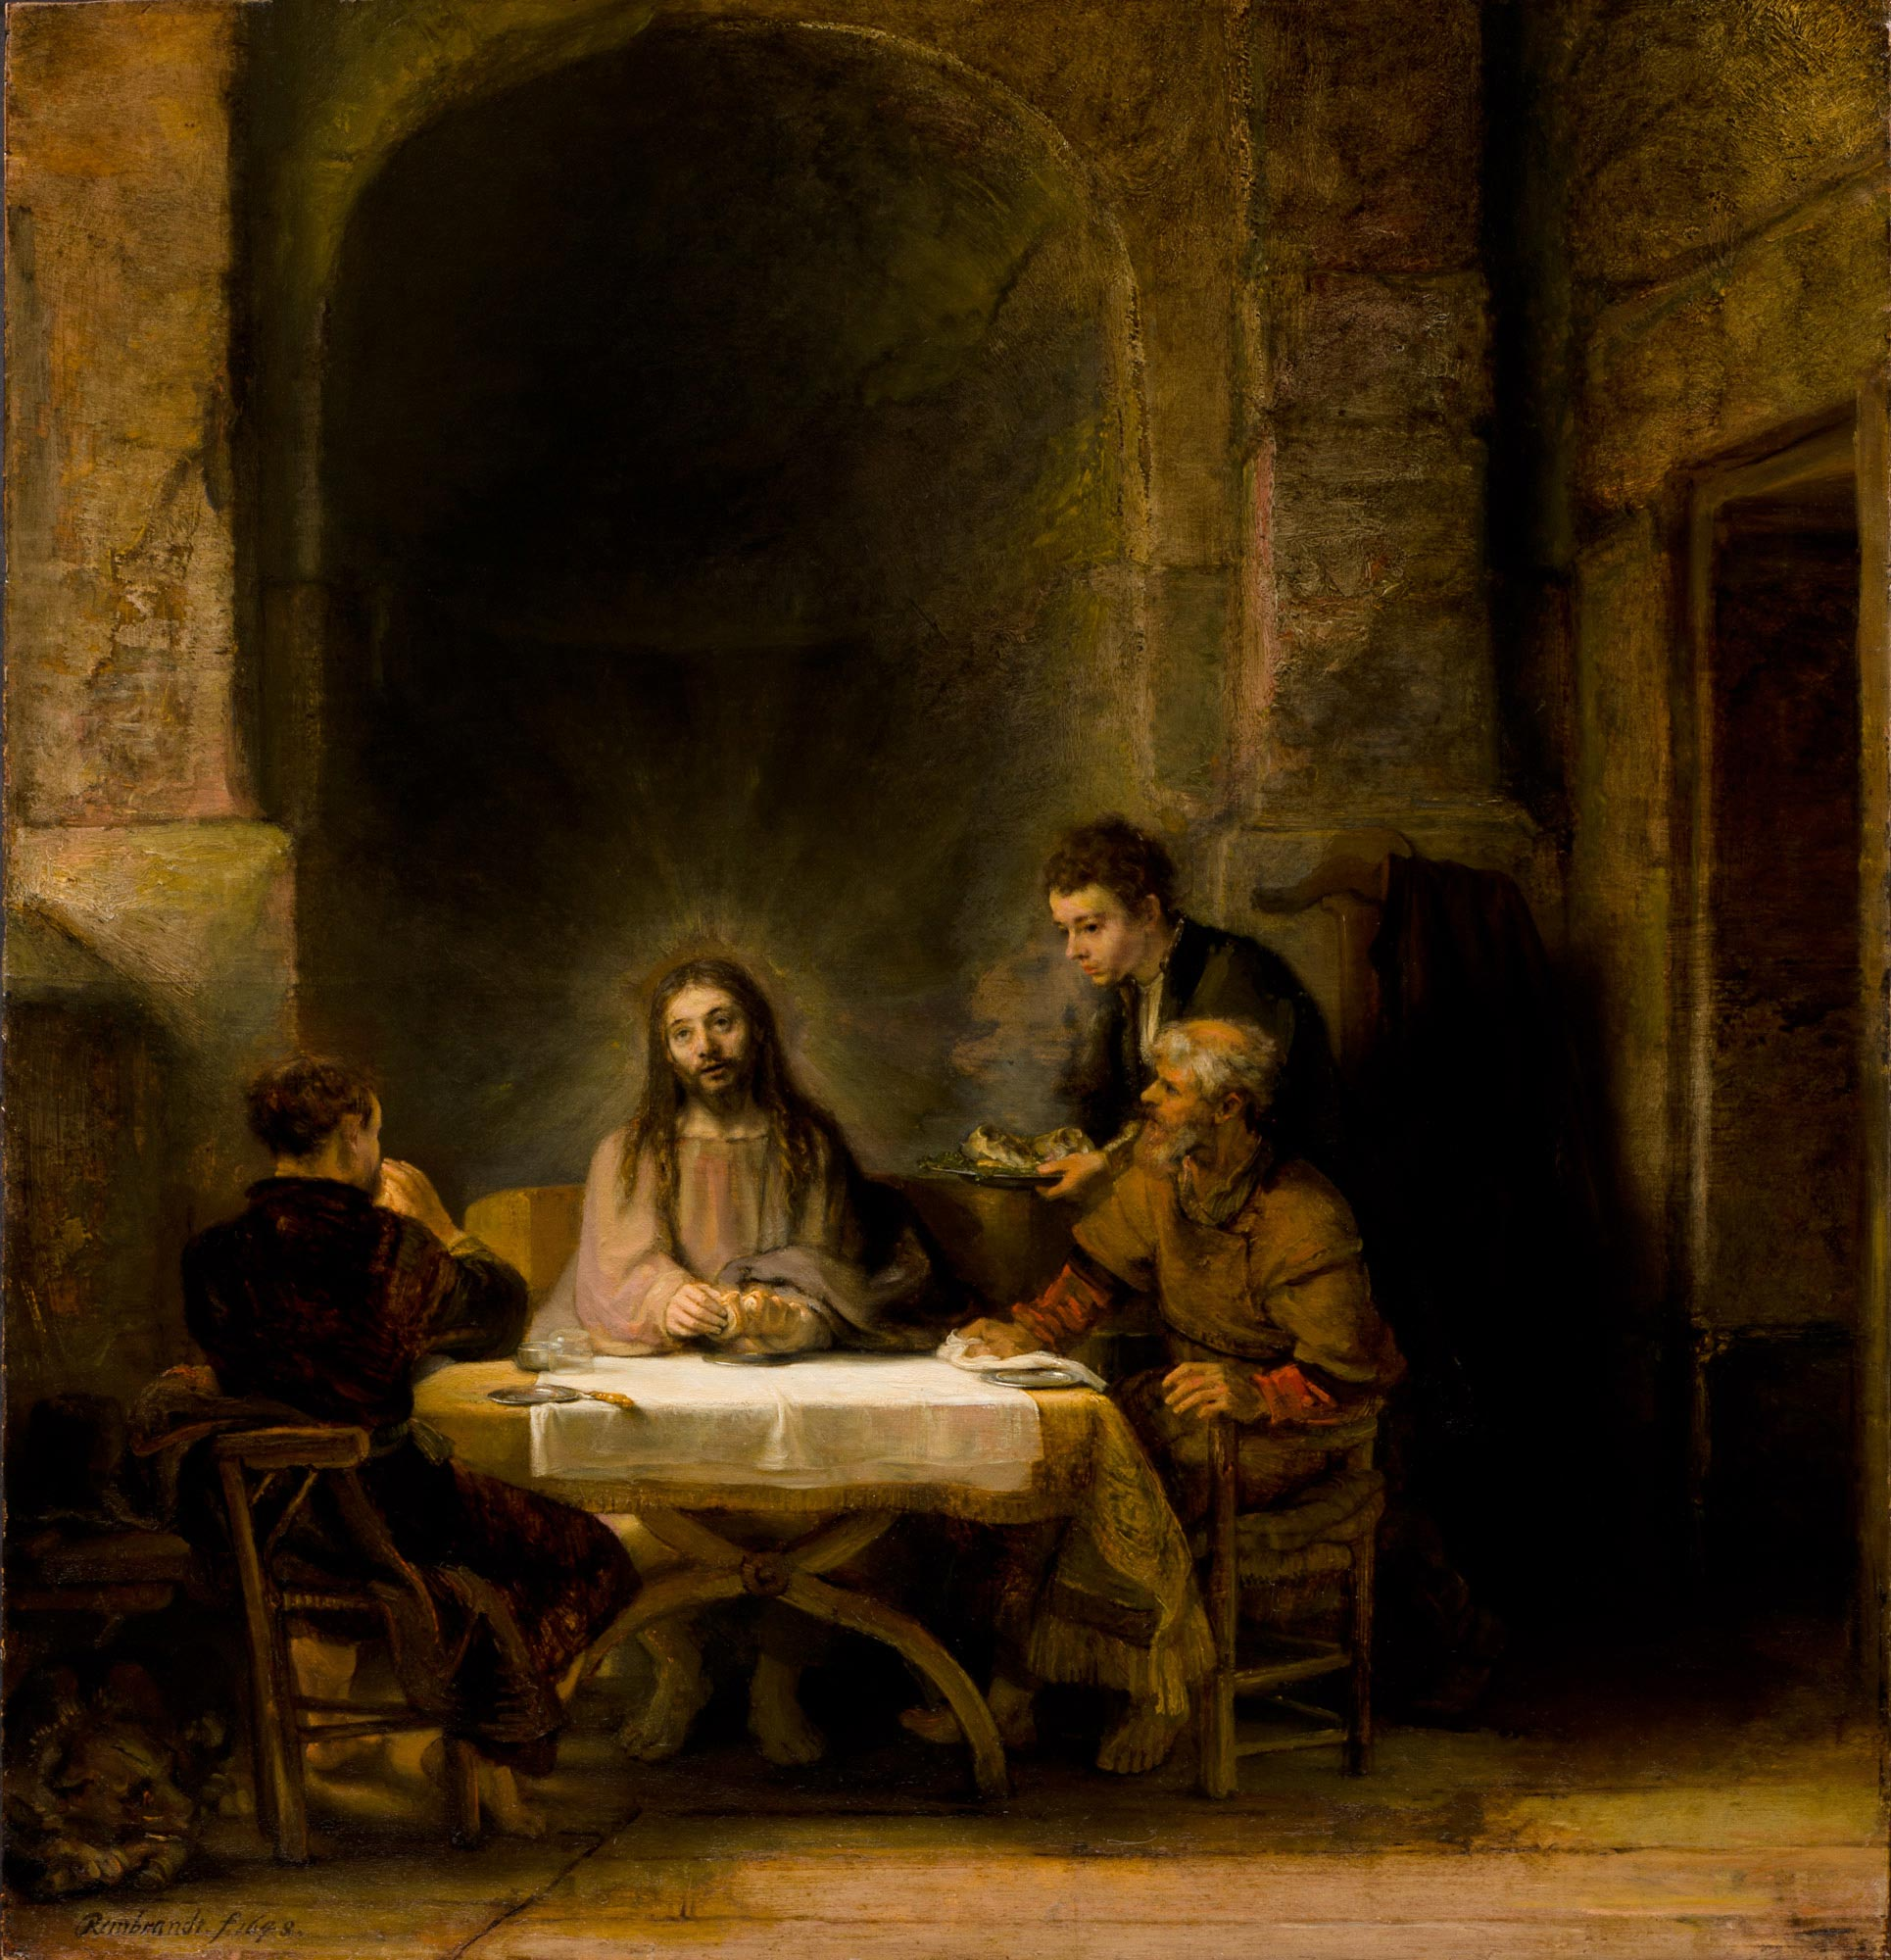 Rembrandt,  Pilgrims of Emmaus , or  The Supper at Emmaus , oil on mahogany, 1648, Louvre, Paris